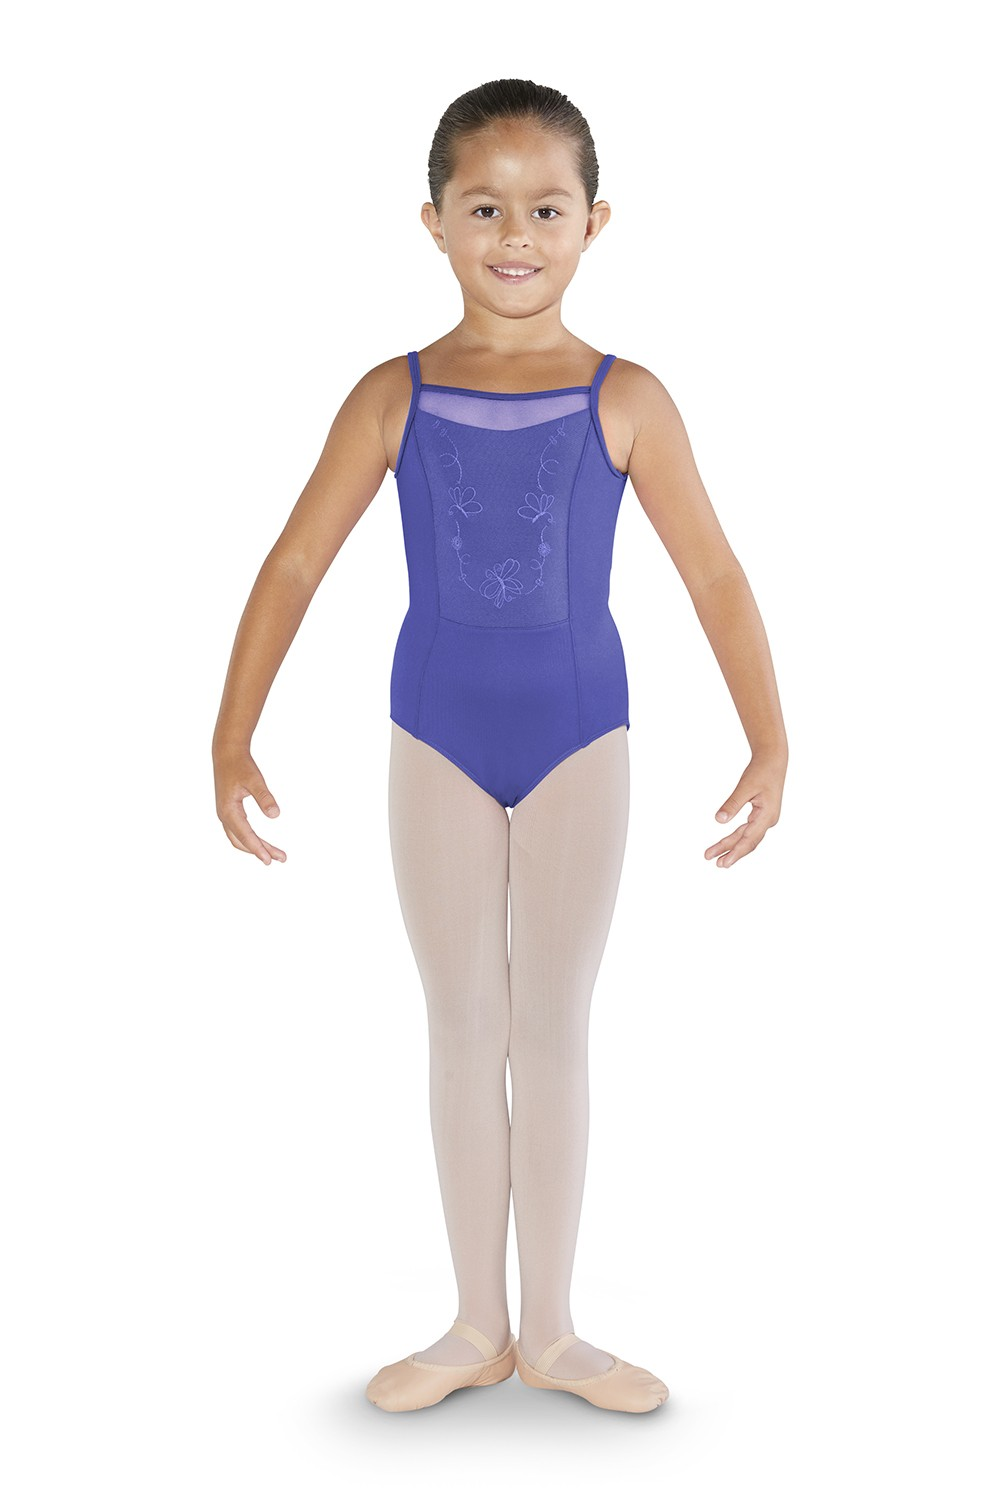 1a8c2abb7149 Stunning Children s Ballet   Dance Leotards - BLOCH® US Store